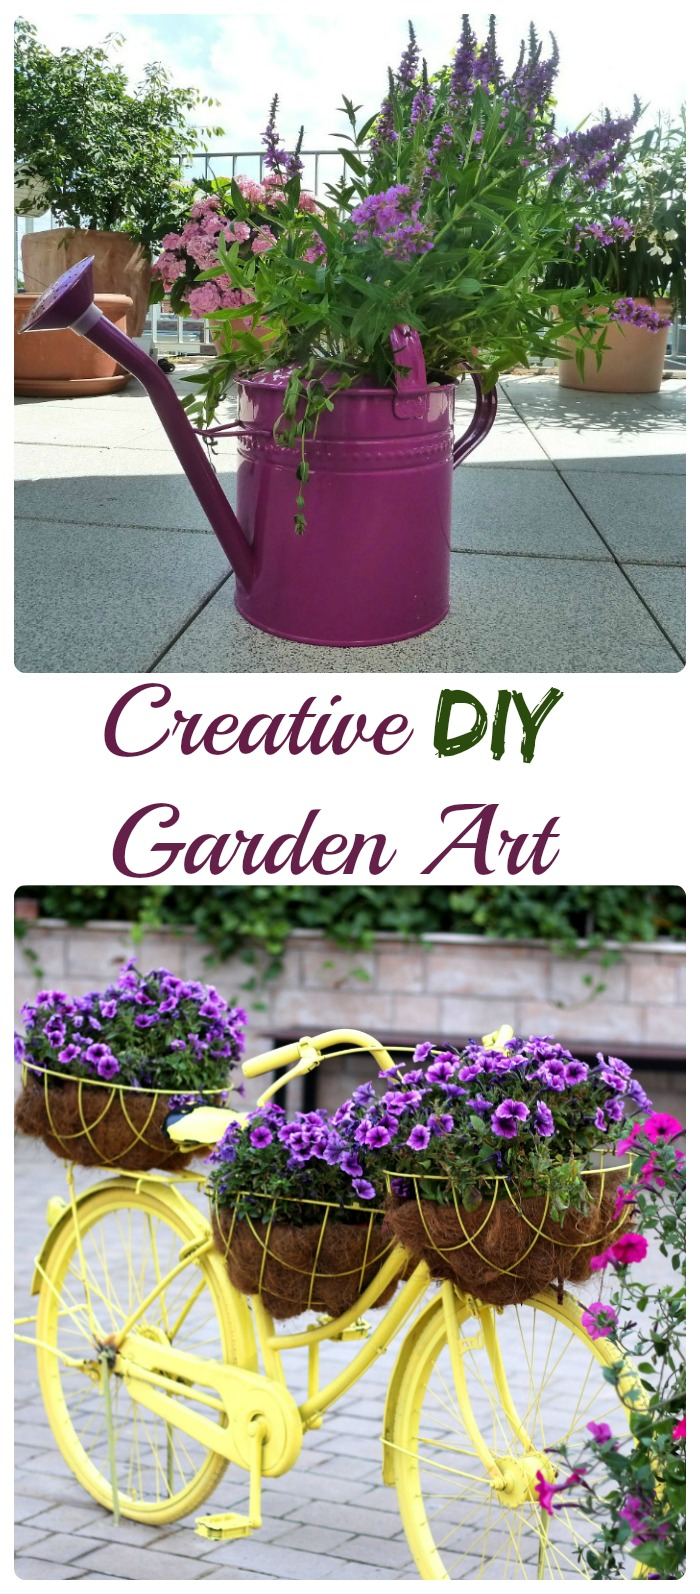 Garden Art can be very expensive at a garden center. But with a bit of creativity and a few common recycled household items, you can turn trash to treasure in no time. thegardeningcook.com